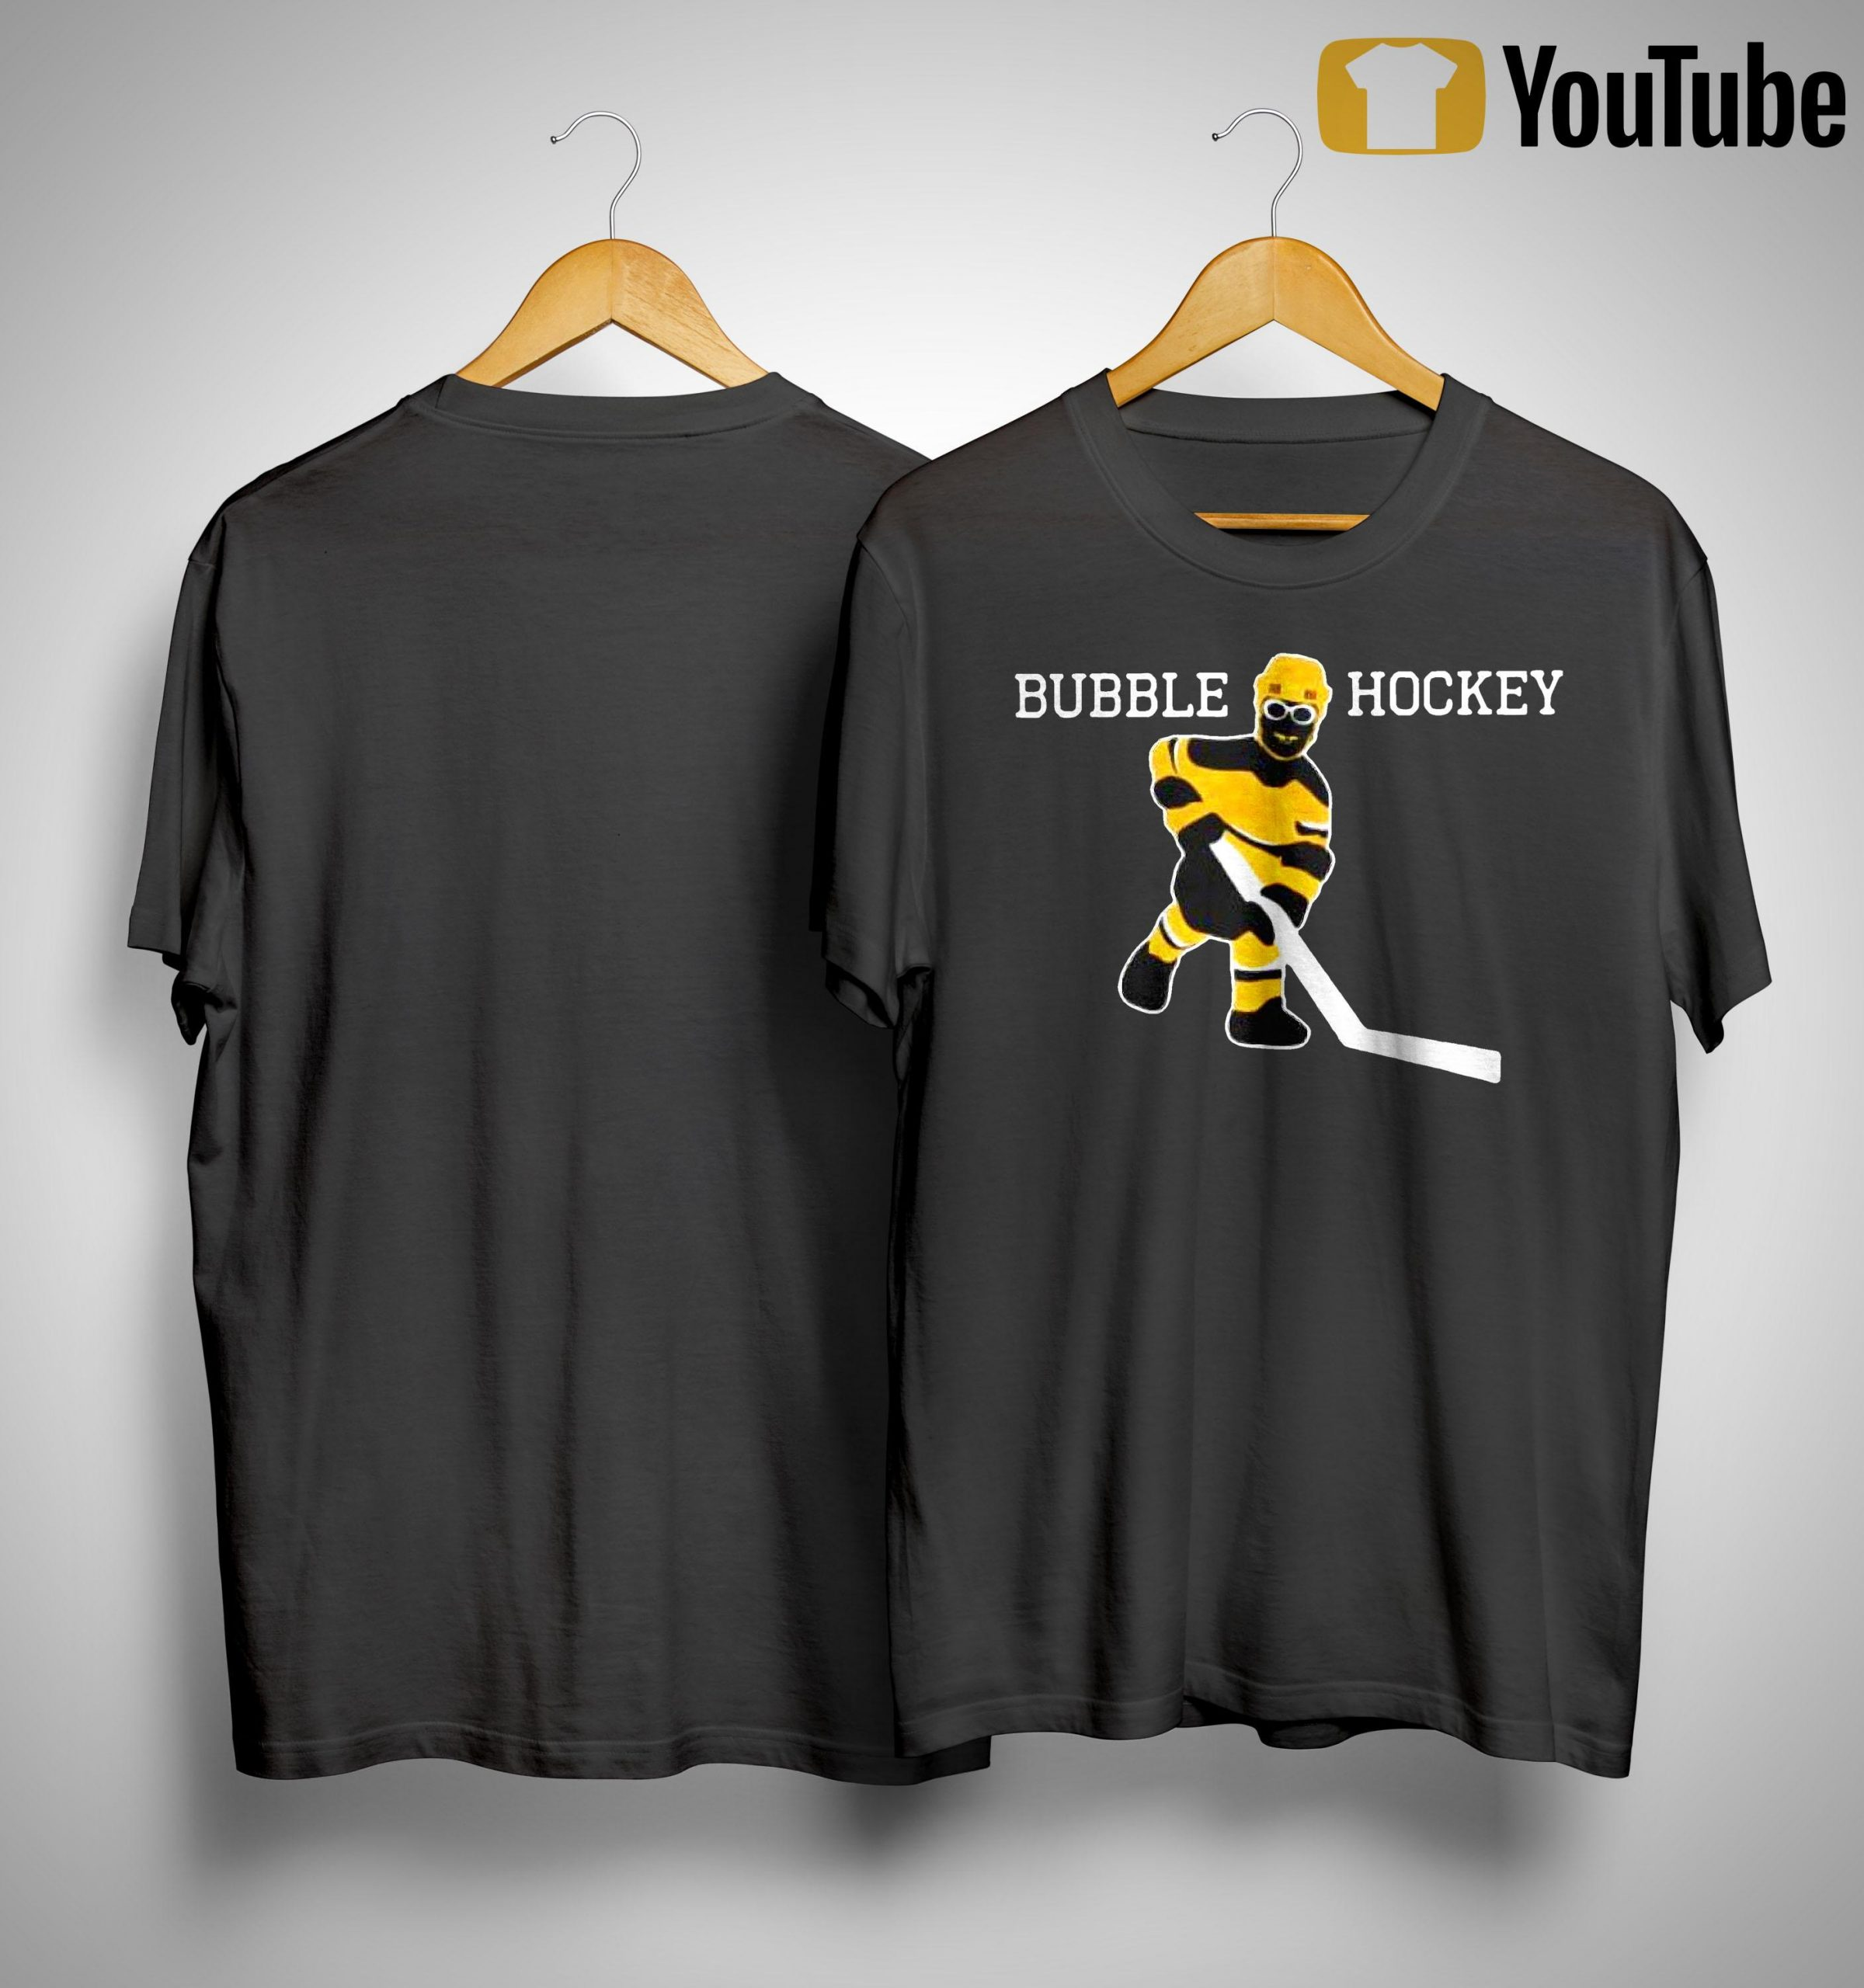 2020 Bubble Hockey Shirt